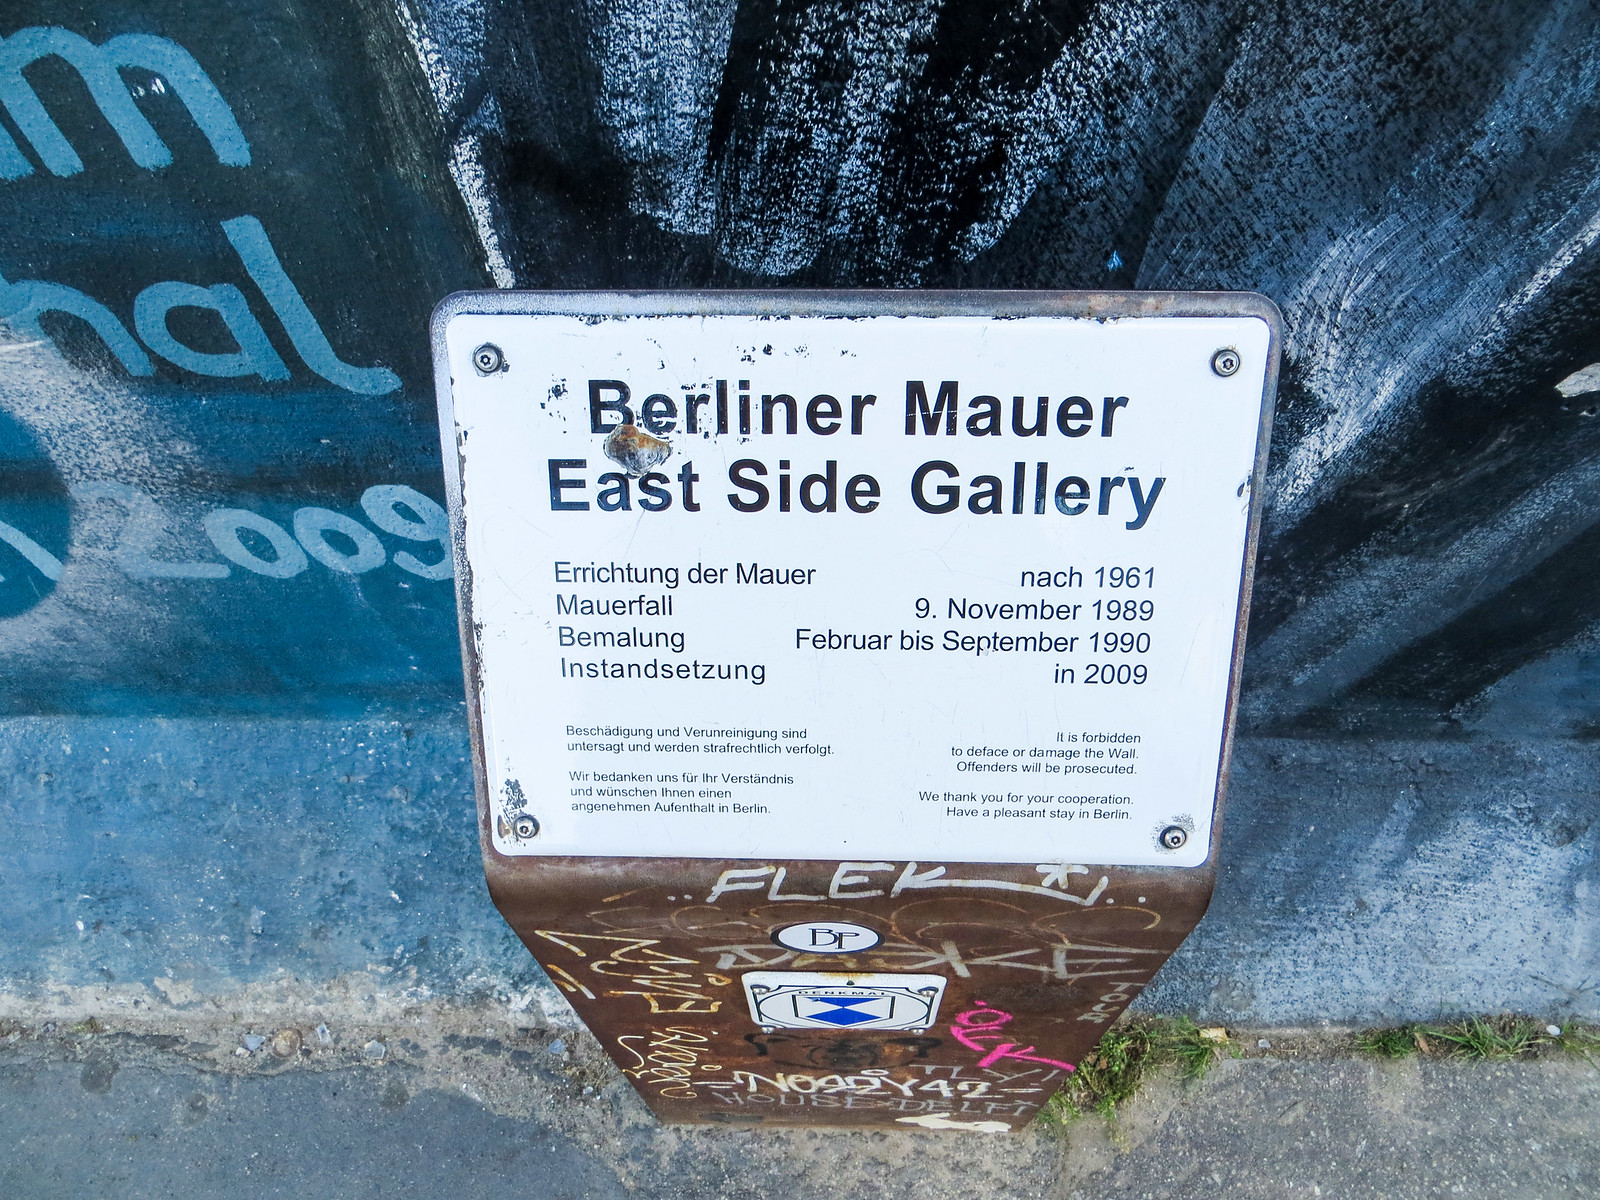 should i go to germany? yes, you learn a lot at the berlin wall